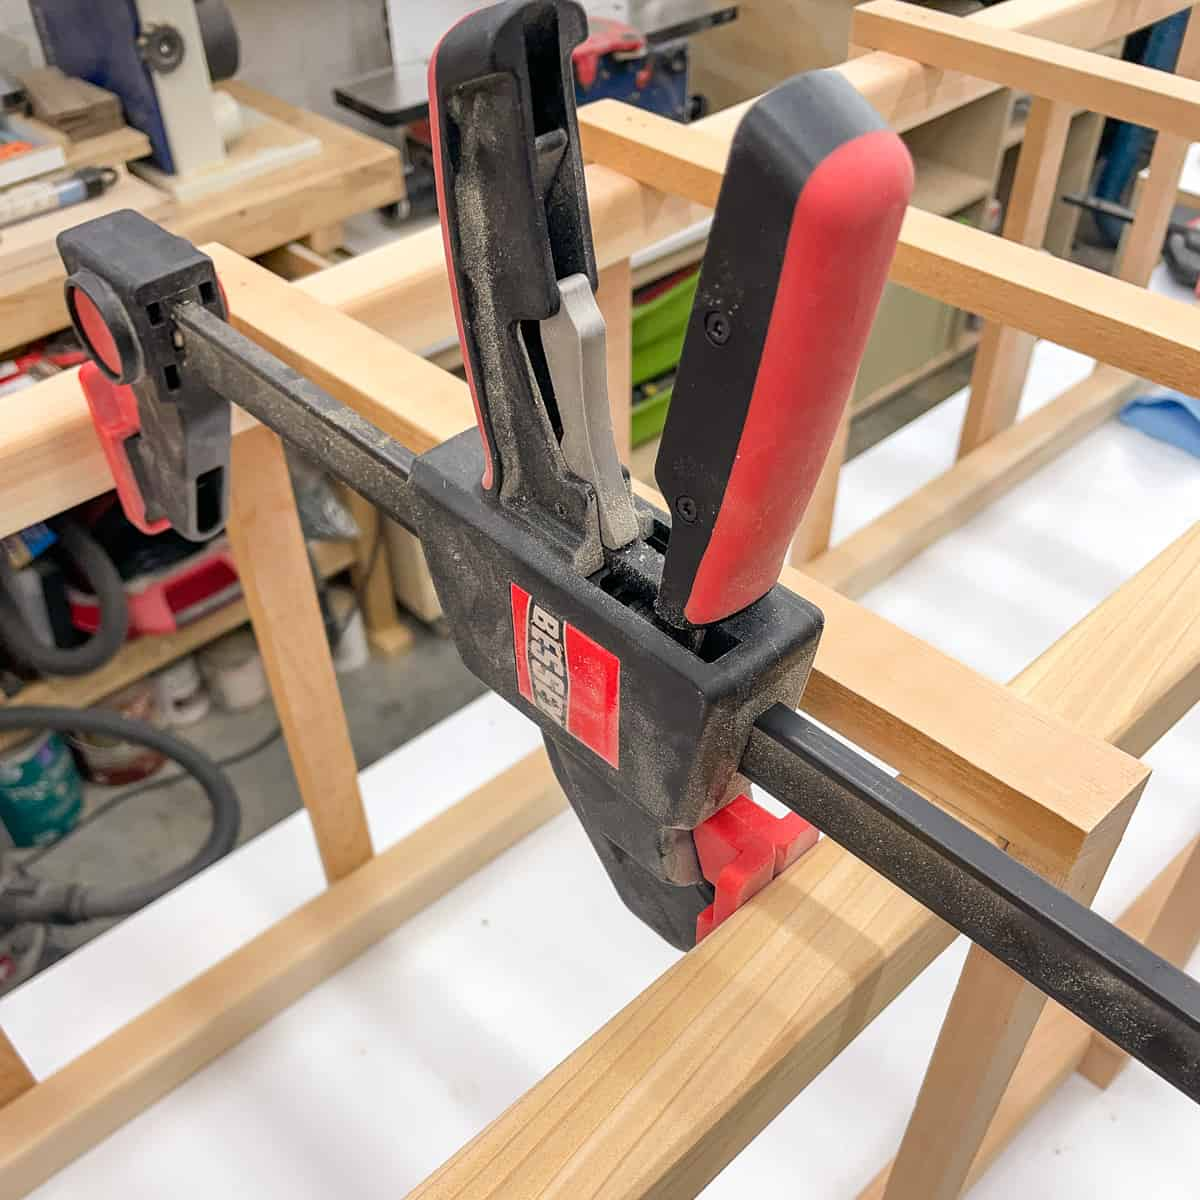 Bessey quick clamps acting as a spreader to align the slats of the wood tomato cage